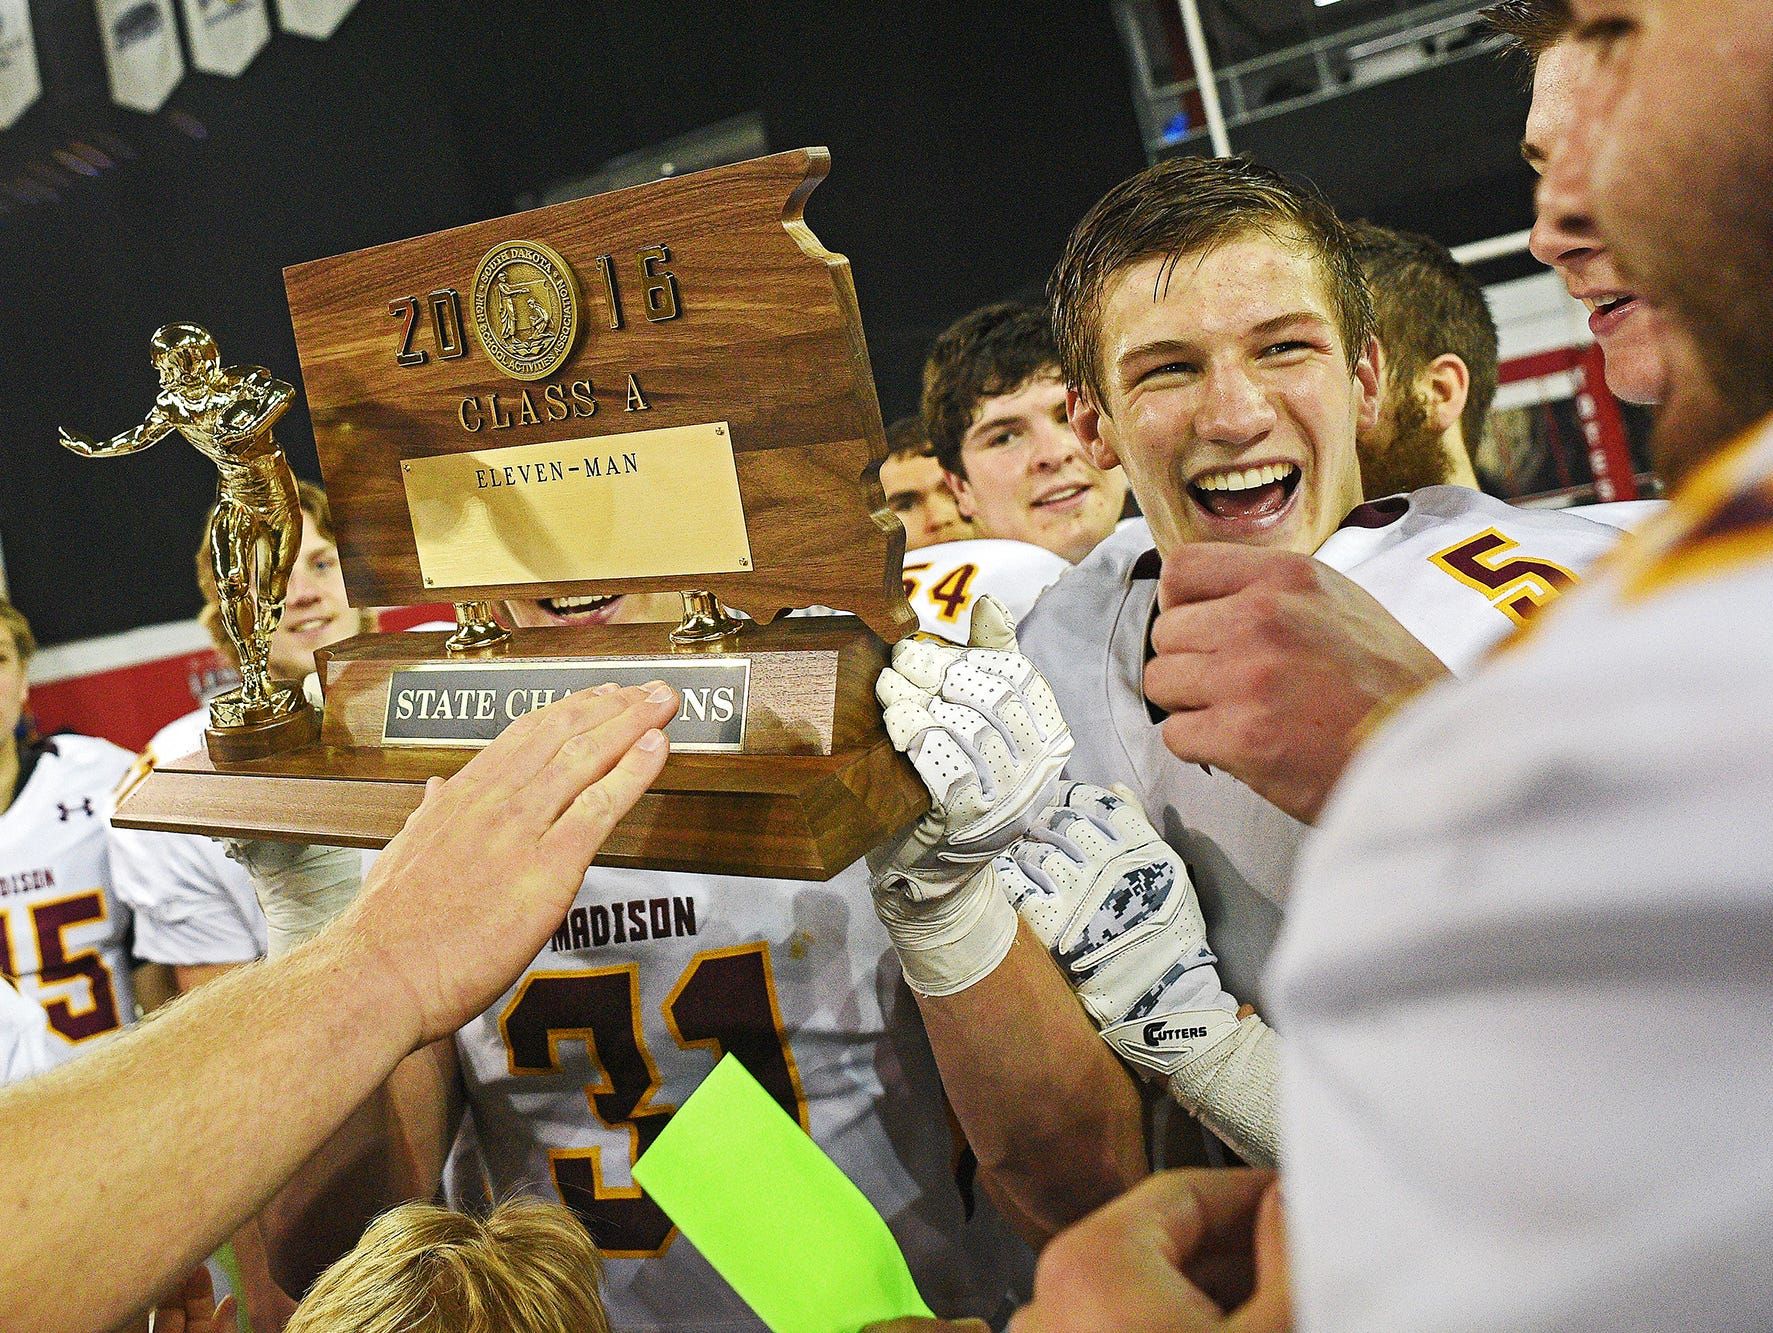 Madison's Noah Guse (5) celebrates with their trophy while celebrating their 39-0 win over Tea Area with their fans and families after the 2016 South Dakota State Class 11A Football Championship game Saturday, Nov. 12, 2016, at the DakotaDome on the University of South Dakota campus in Vermillion, S.D.